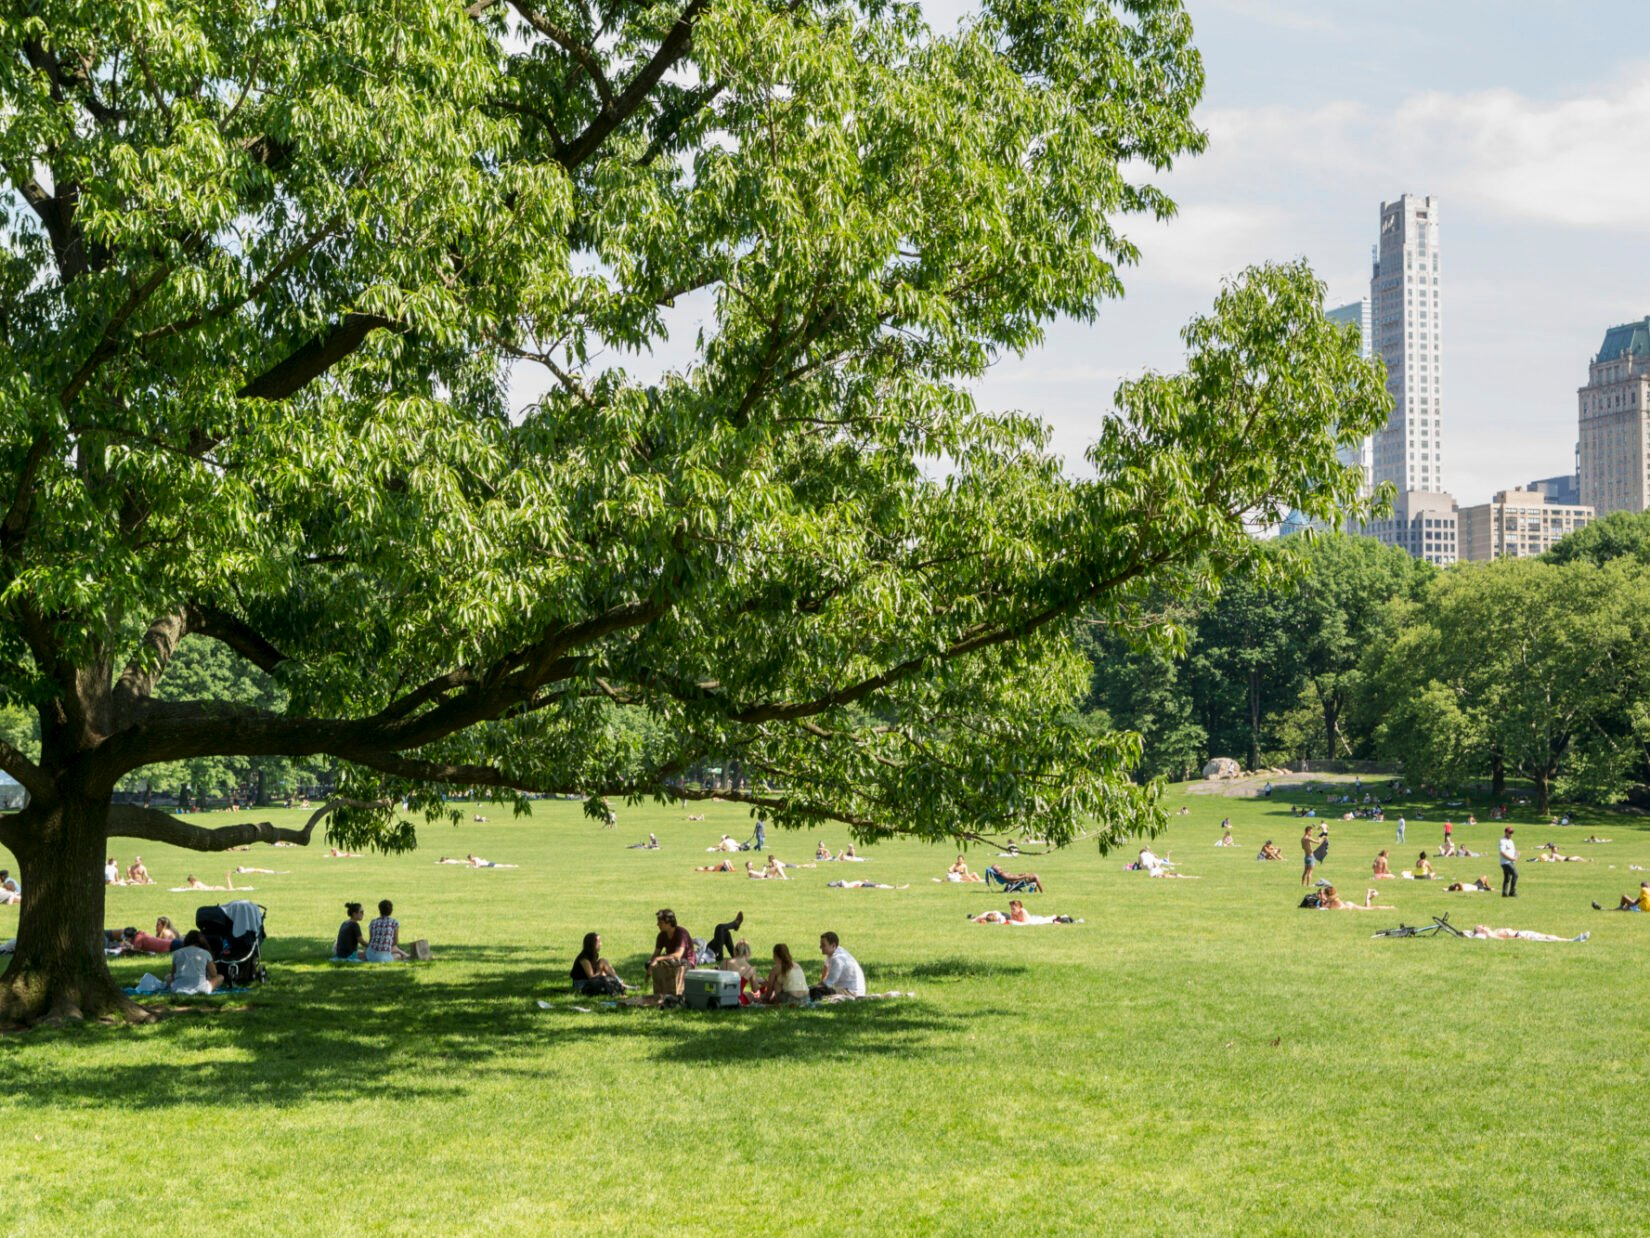 Picnickers under the shade of a tree in the Sheep Meadow on a beautiful summer day